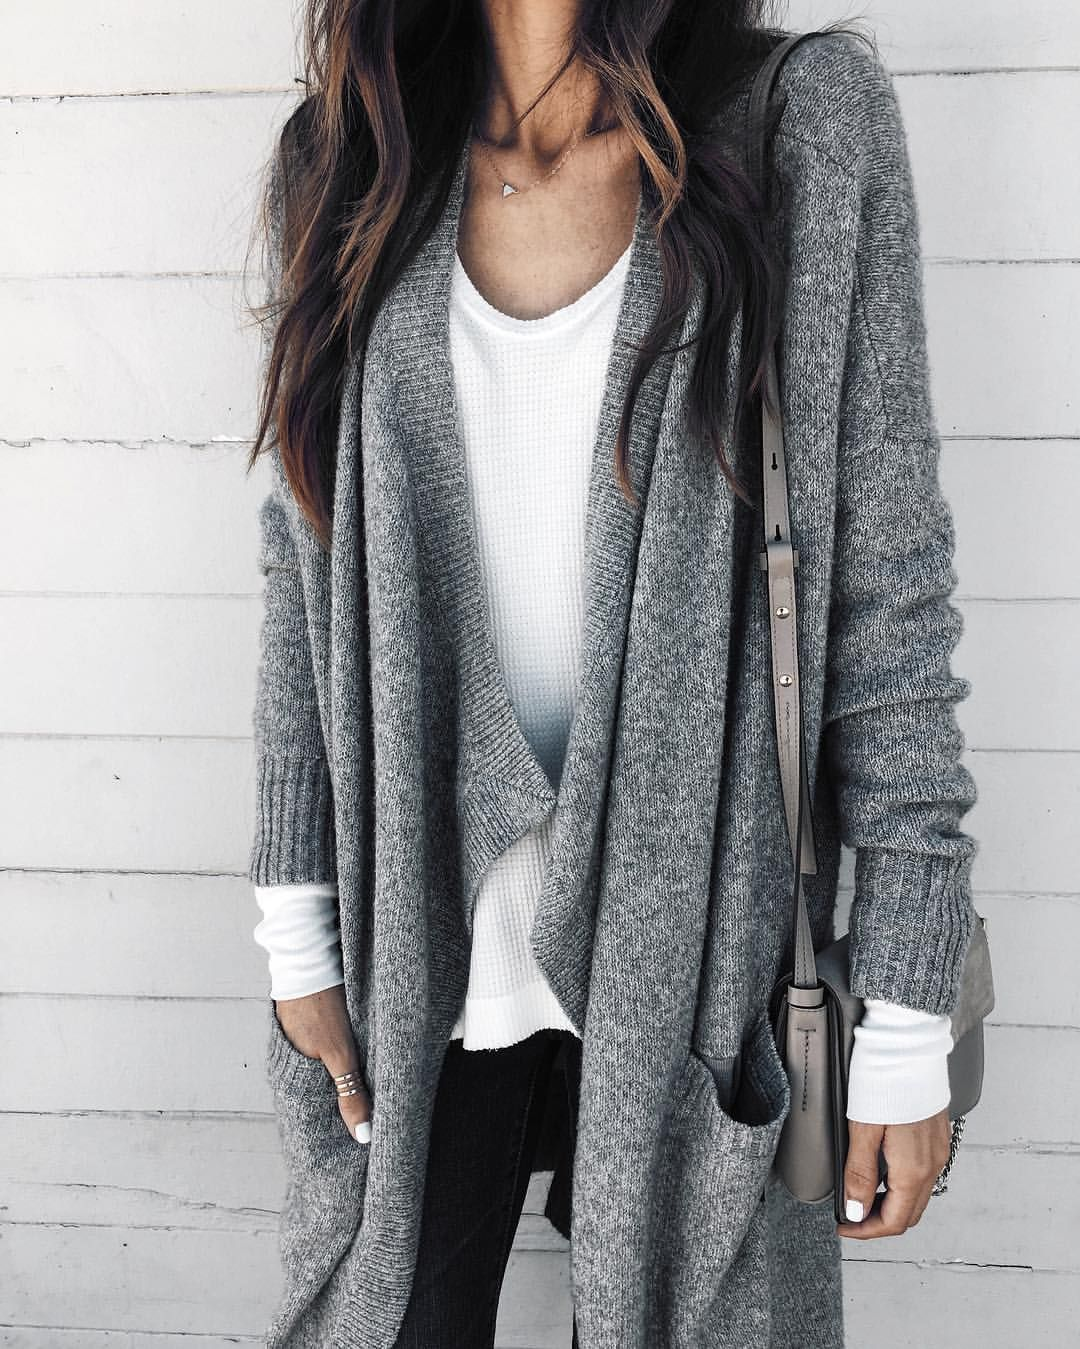 Layered White & Gray Sweater … | Pinteres…